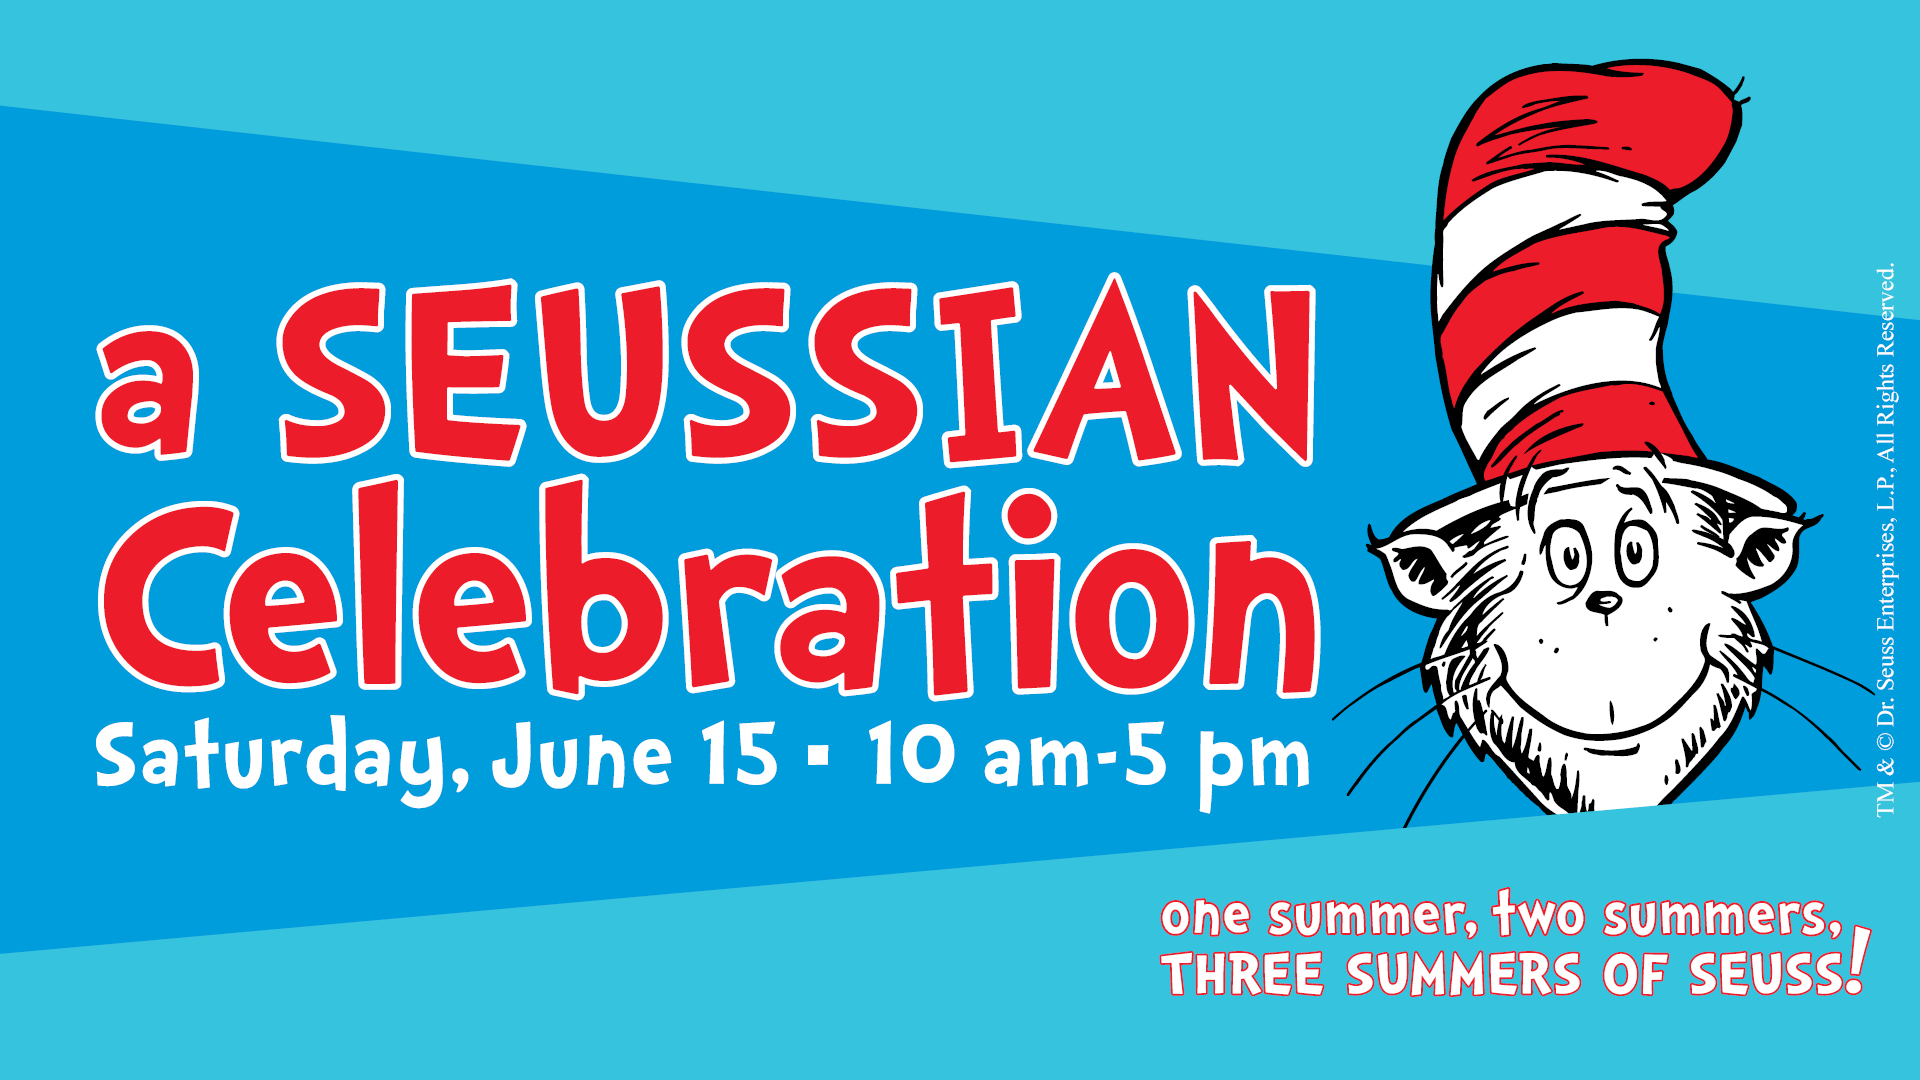 One Summer! Two Summers! Three Summers Of Seuss!